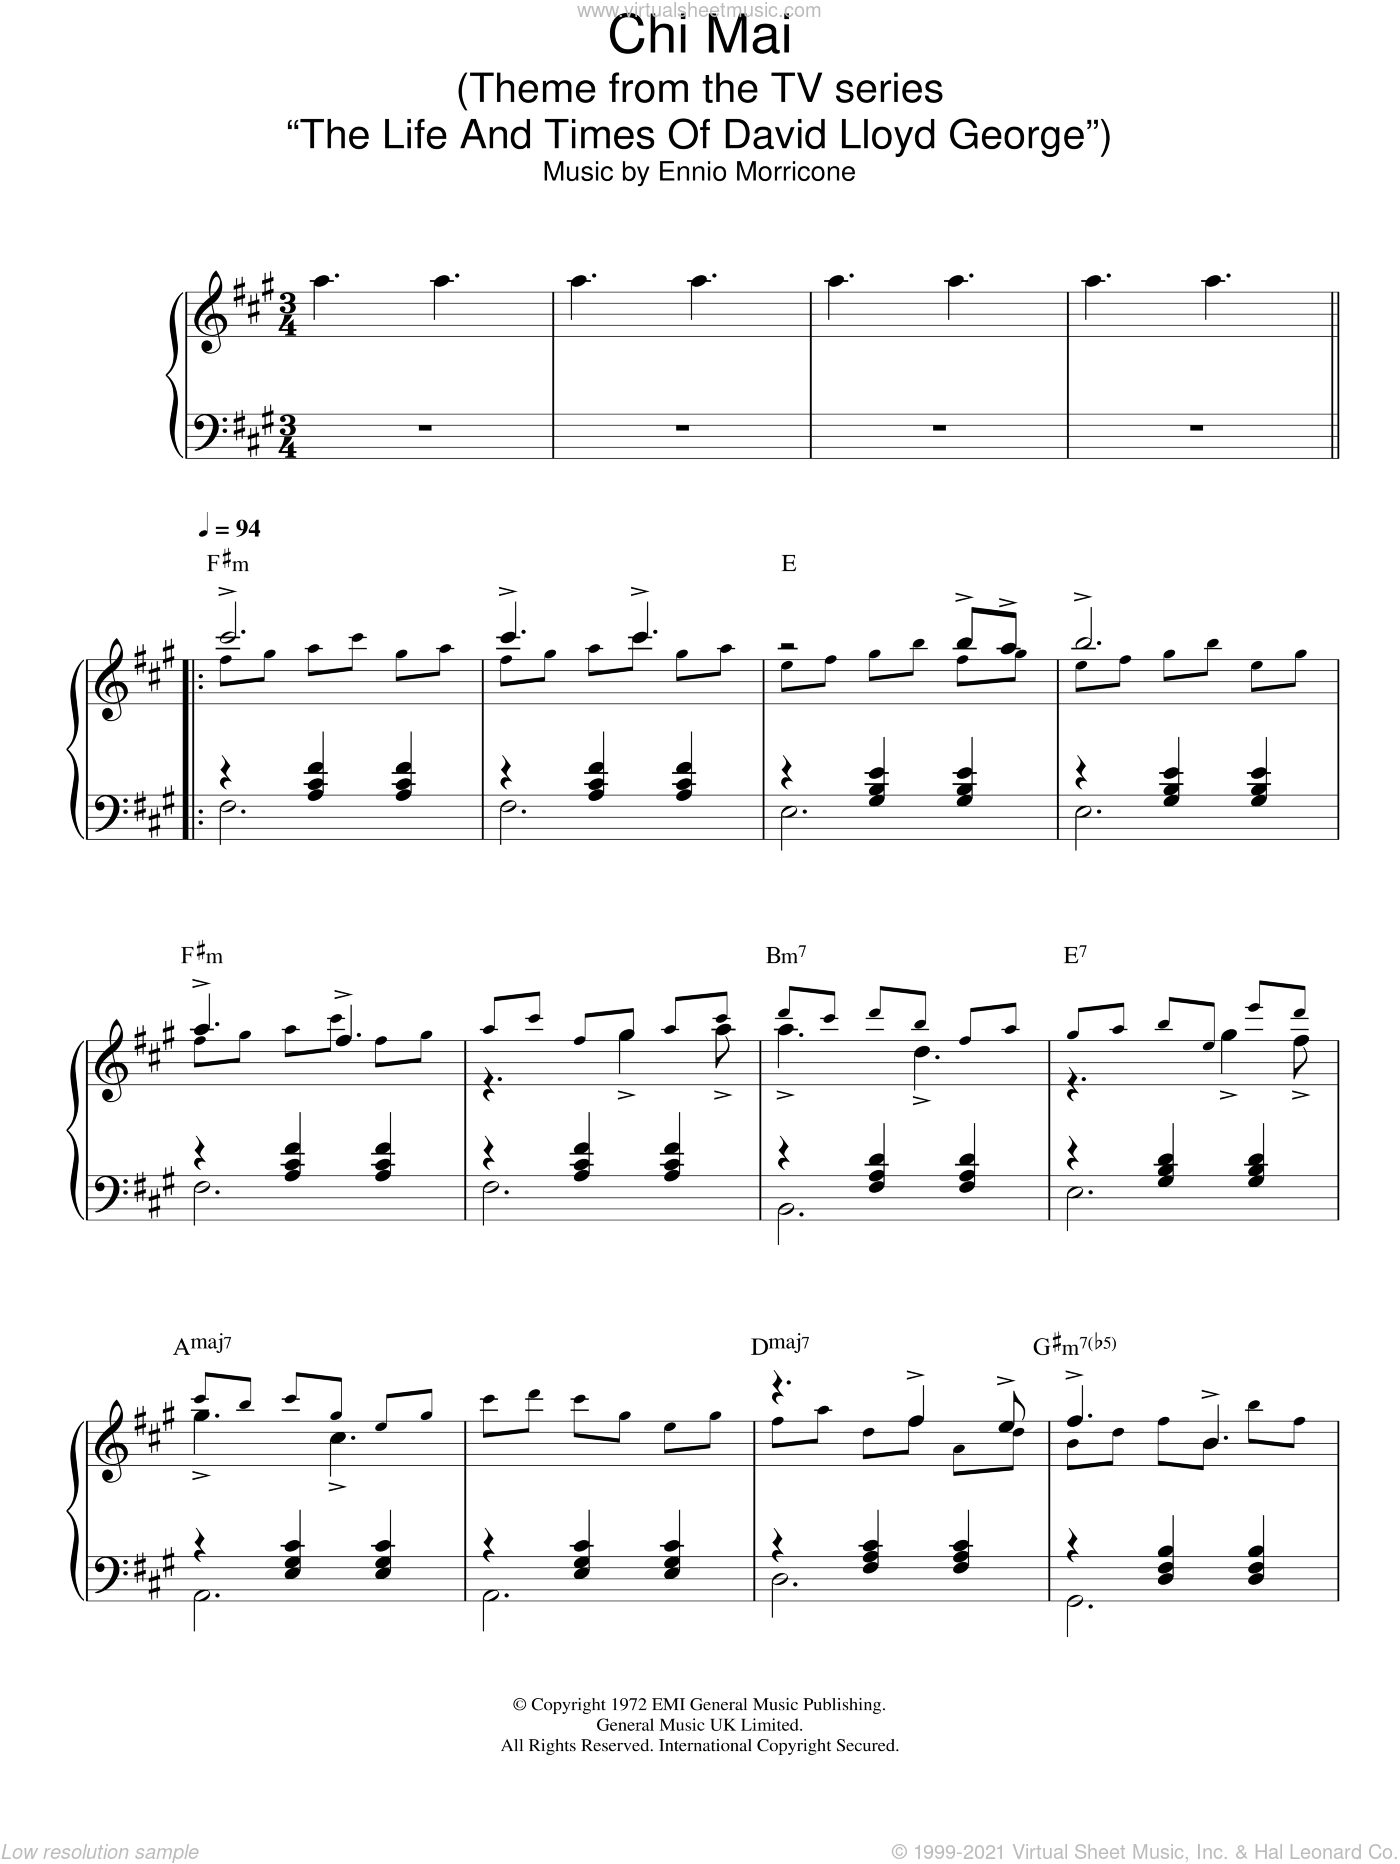 Chi Mai (Theme from The Life And Times Of David Lloyd George) sheet music for piano solo by Ennio Morricone, intermediate skill level